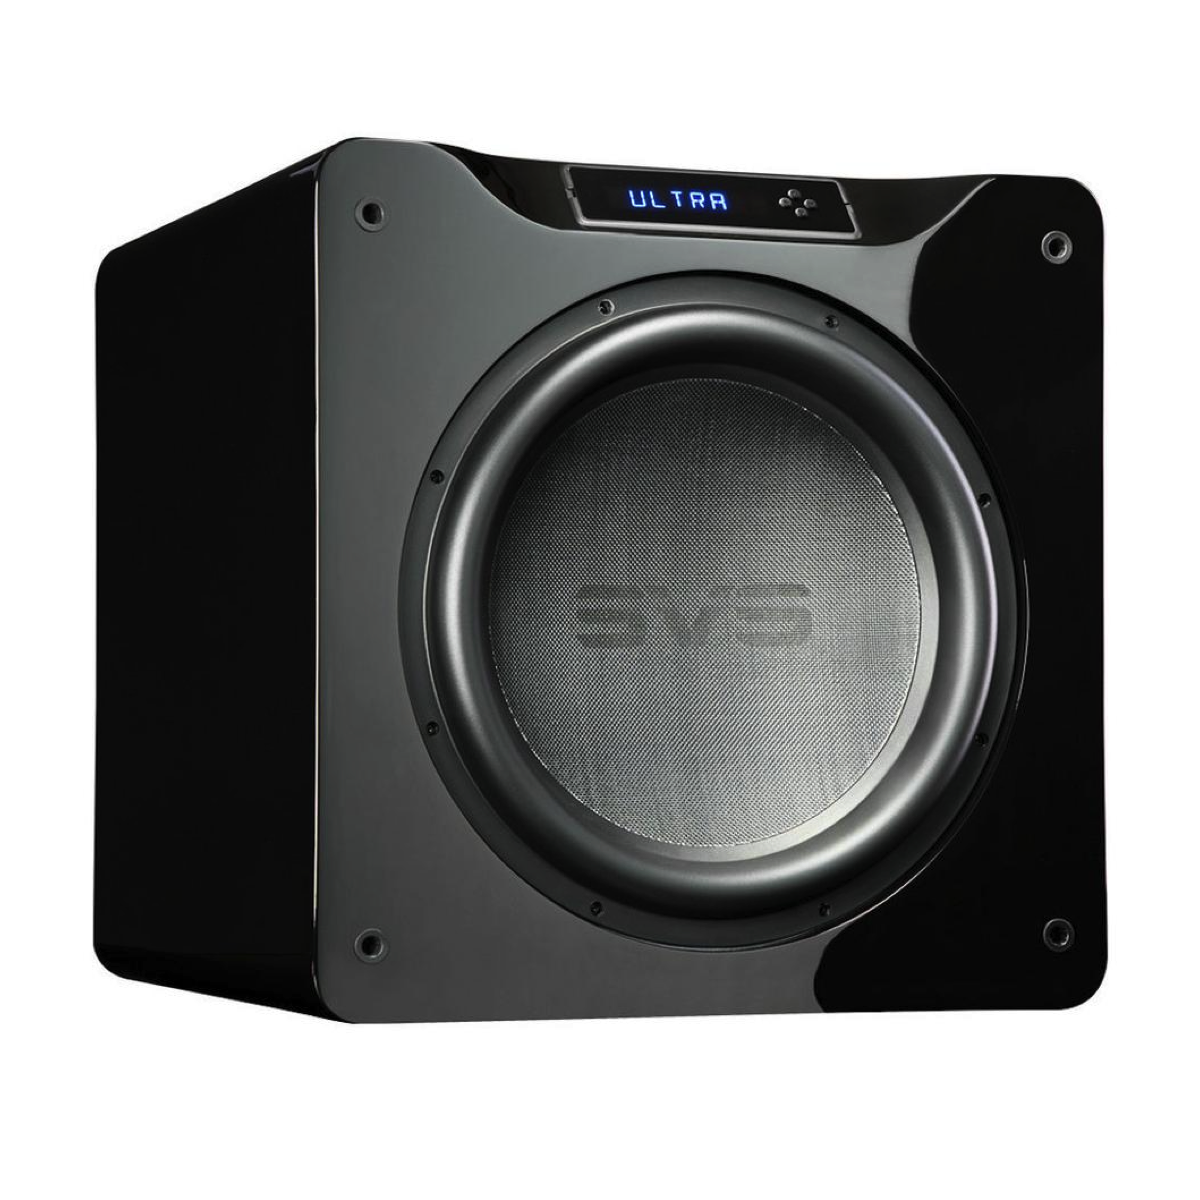 SVS Sound SB-16 Ultra - Subwoofer (Piano Gloss Black), SVS Sound, Subwoofer - AVStore.in